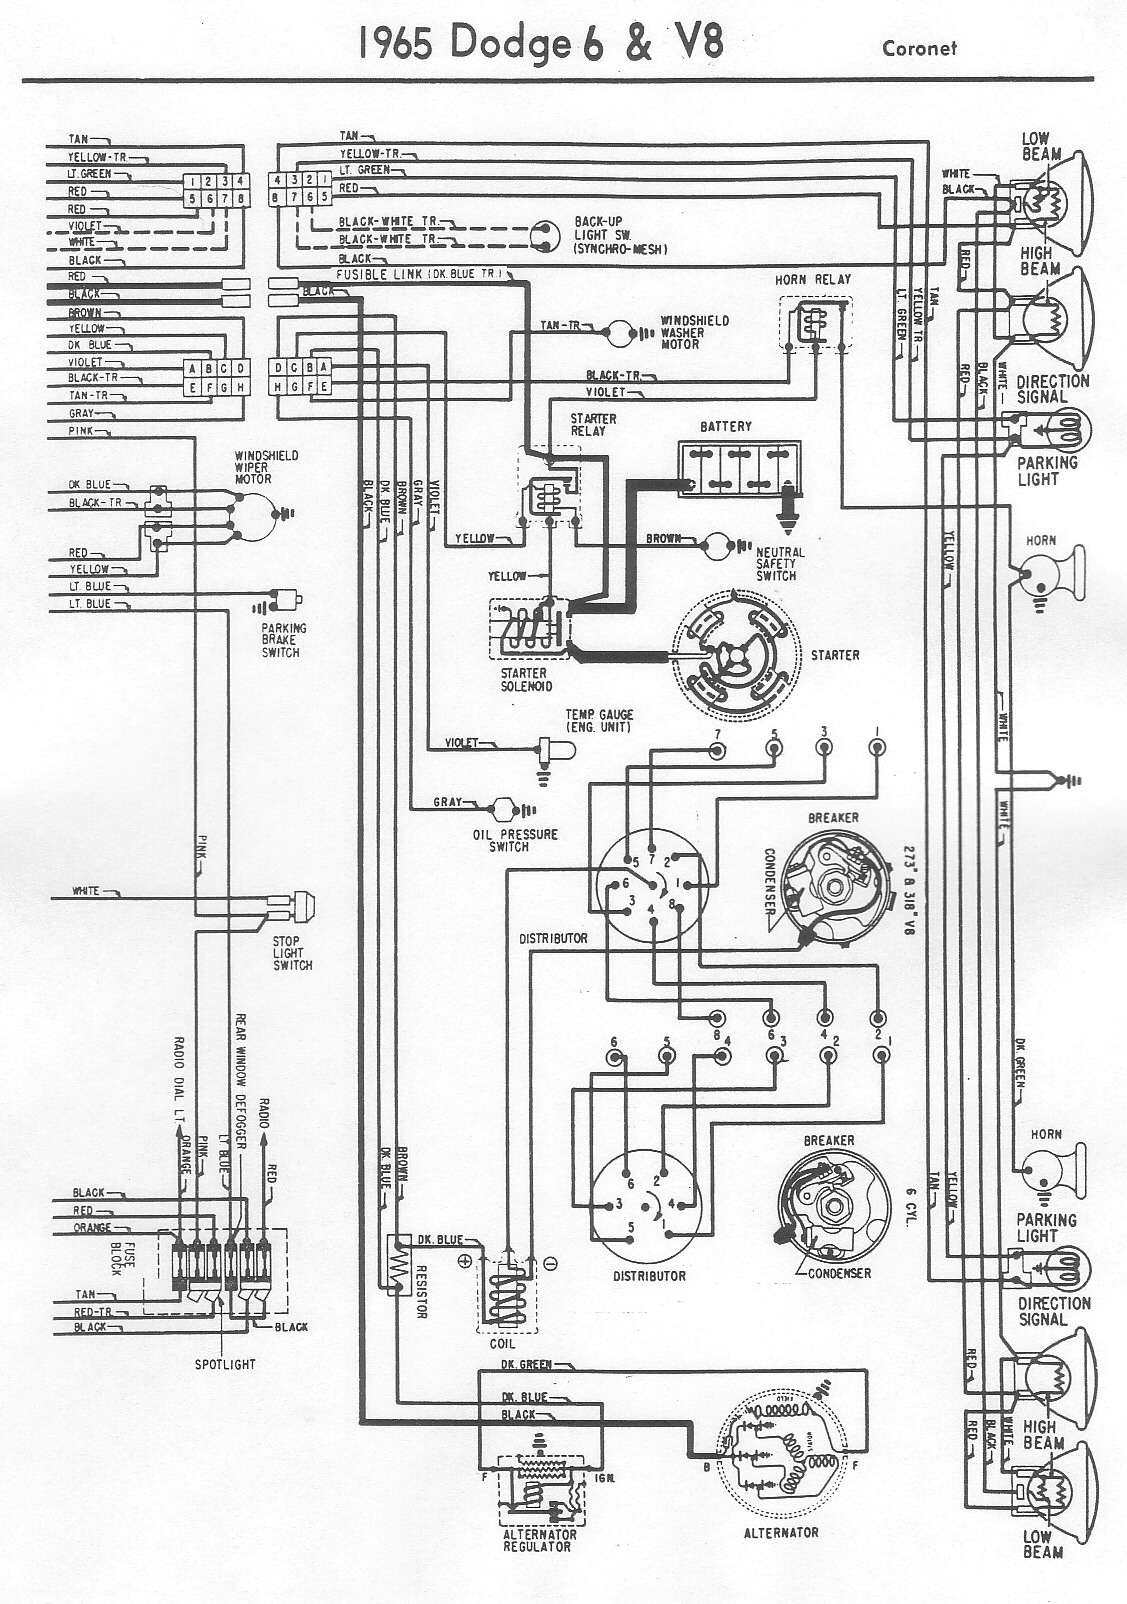 1966 dodge coronet wiring diagram image for wiring diagrams and